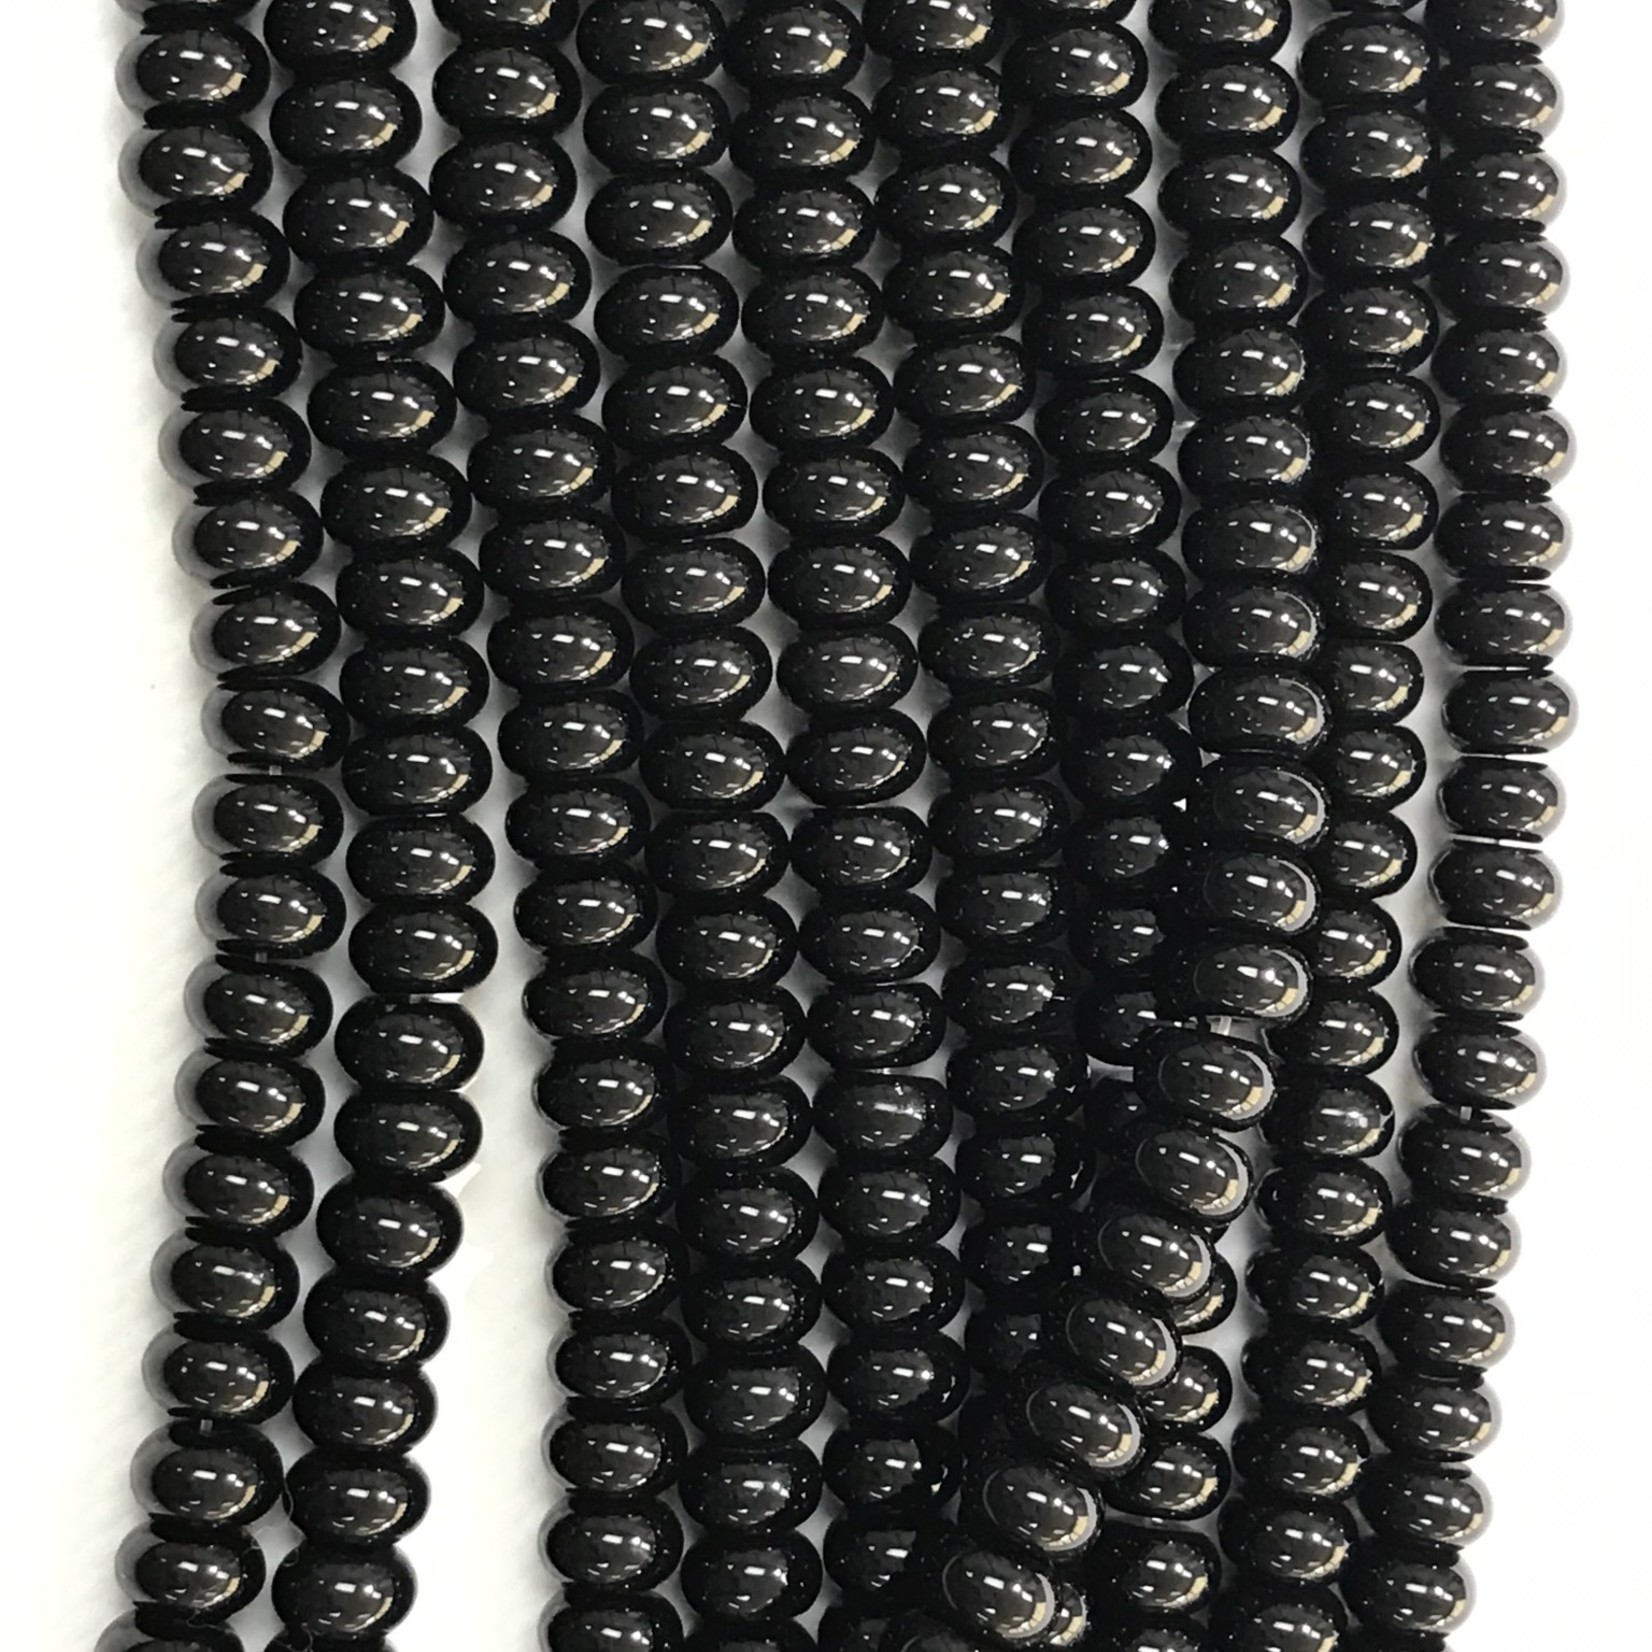 Black Agate Abacus/Rondelle Beads 8 - 9mm